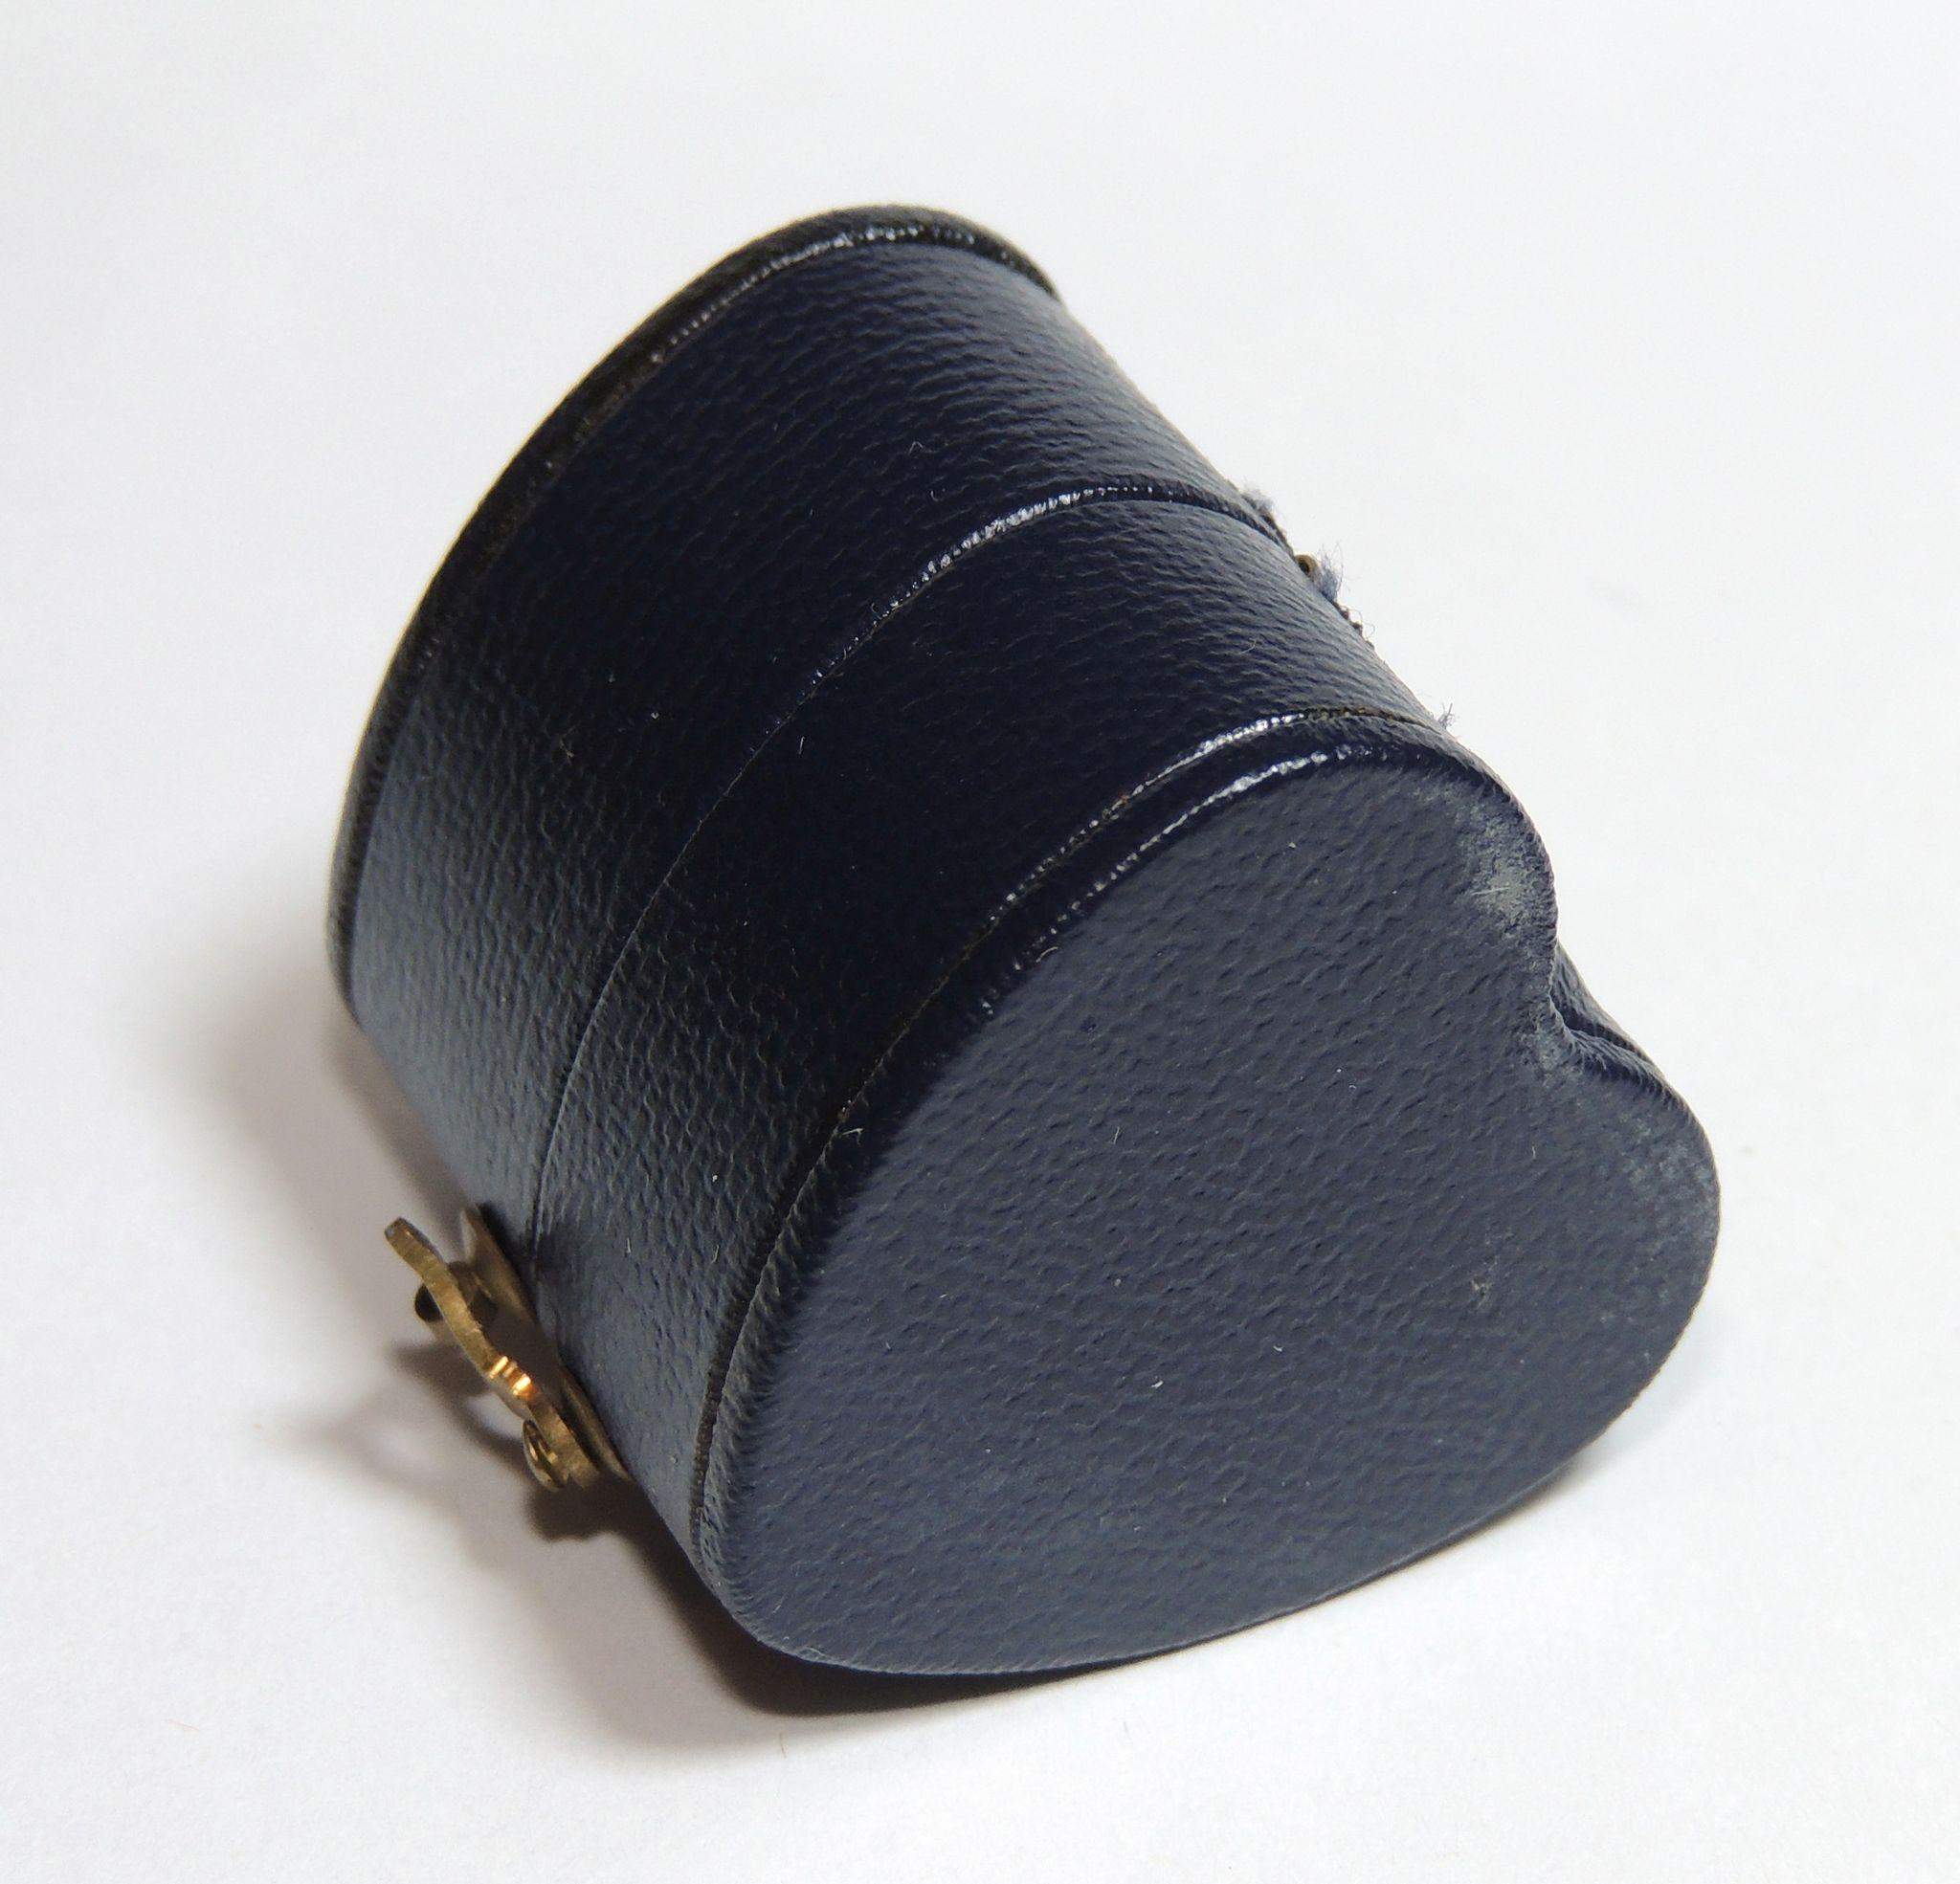 Antique Leather Heart Shaped Ring Box